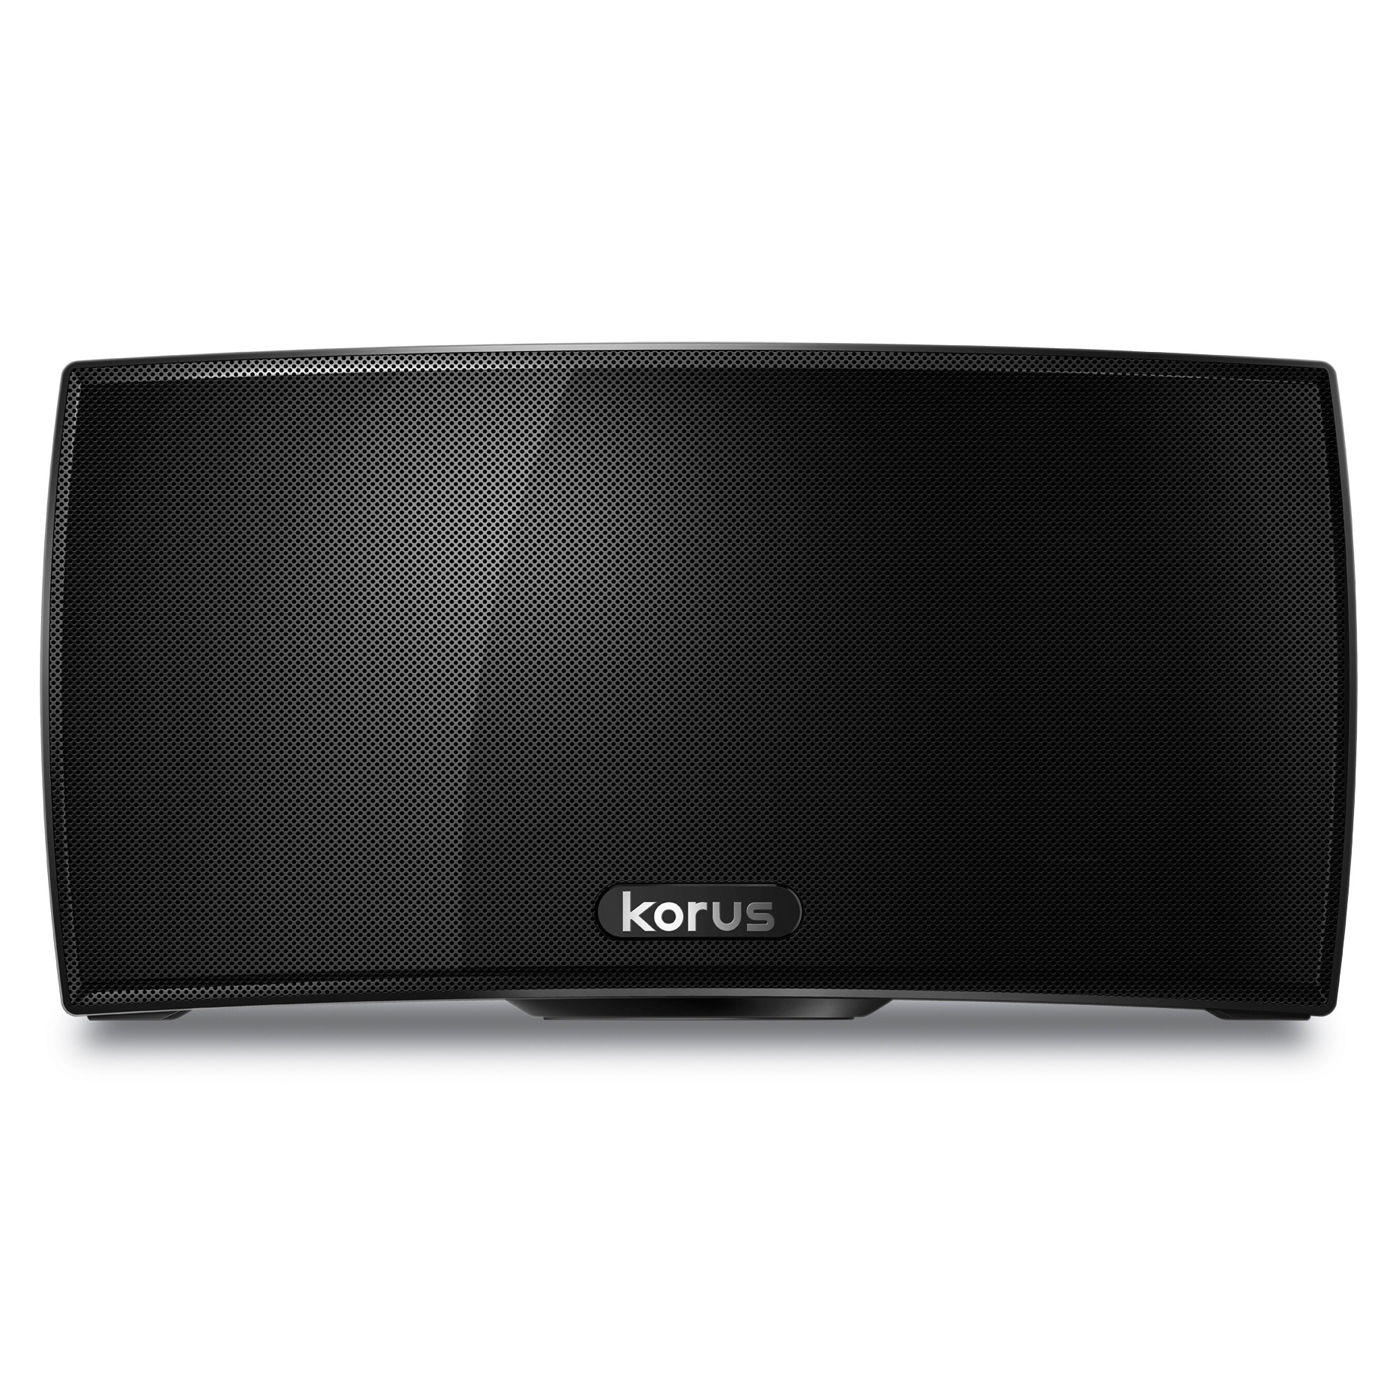 Korus V400 Premium Wireless Home Speaker Starter Kit (Black)